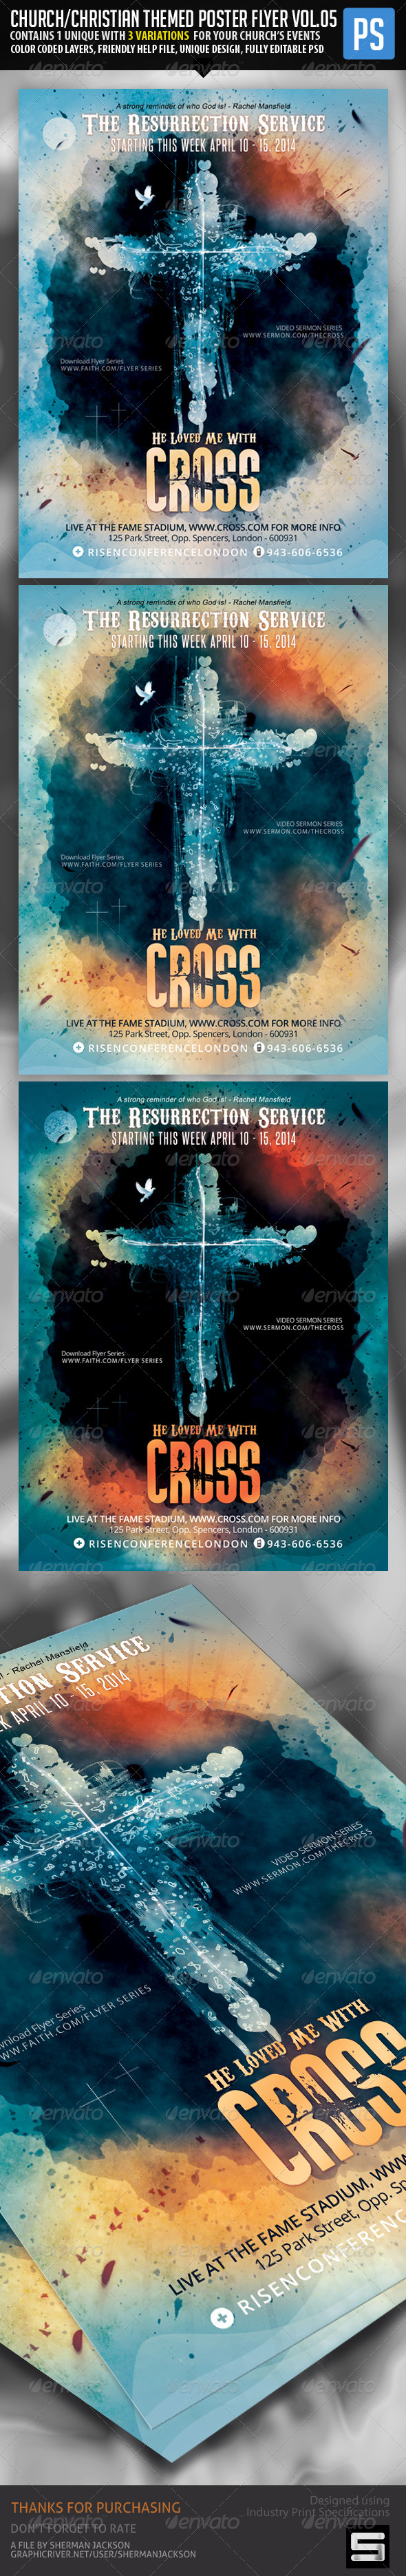 GraphicRiver Church Christian Themed Poster Flyer Vol.5 7229166